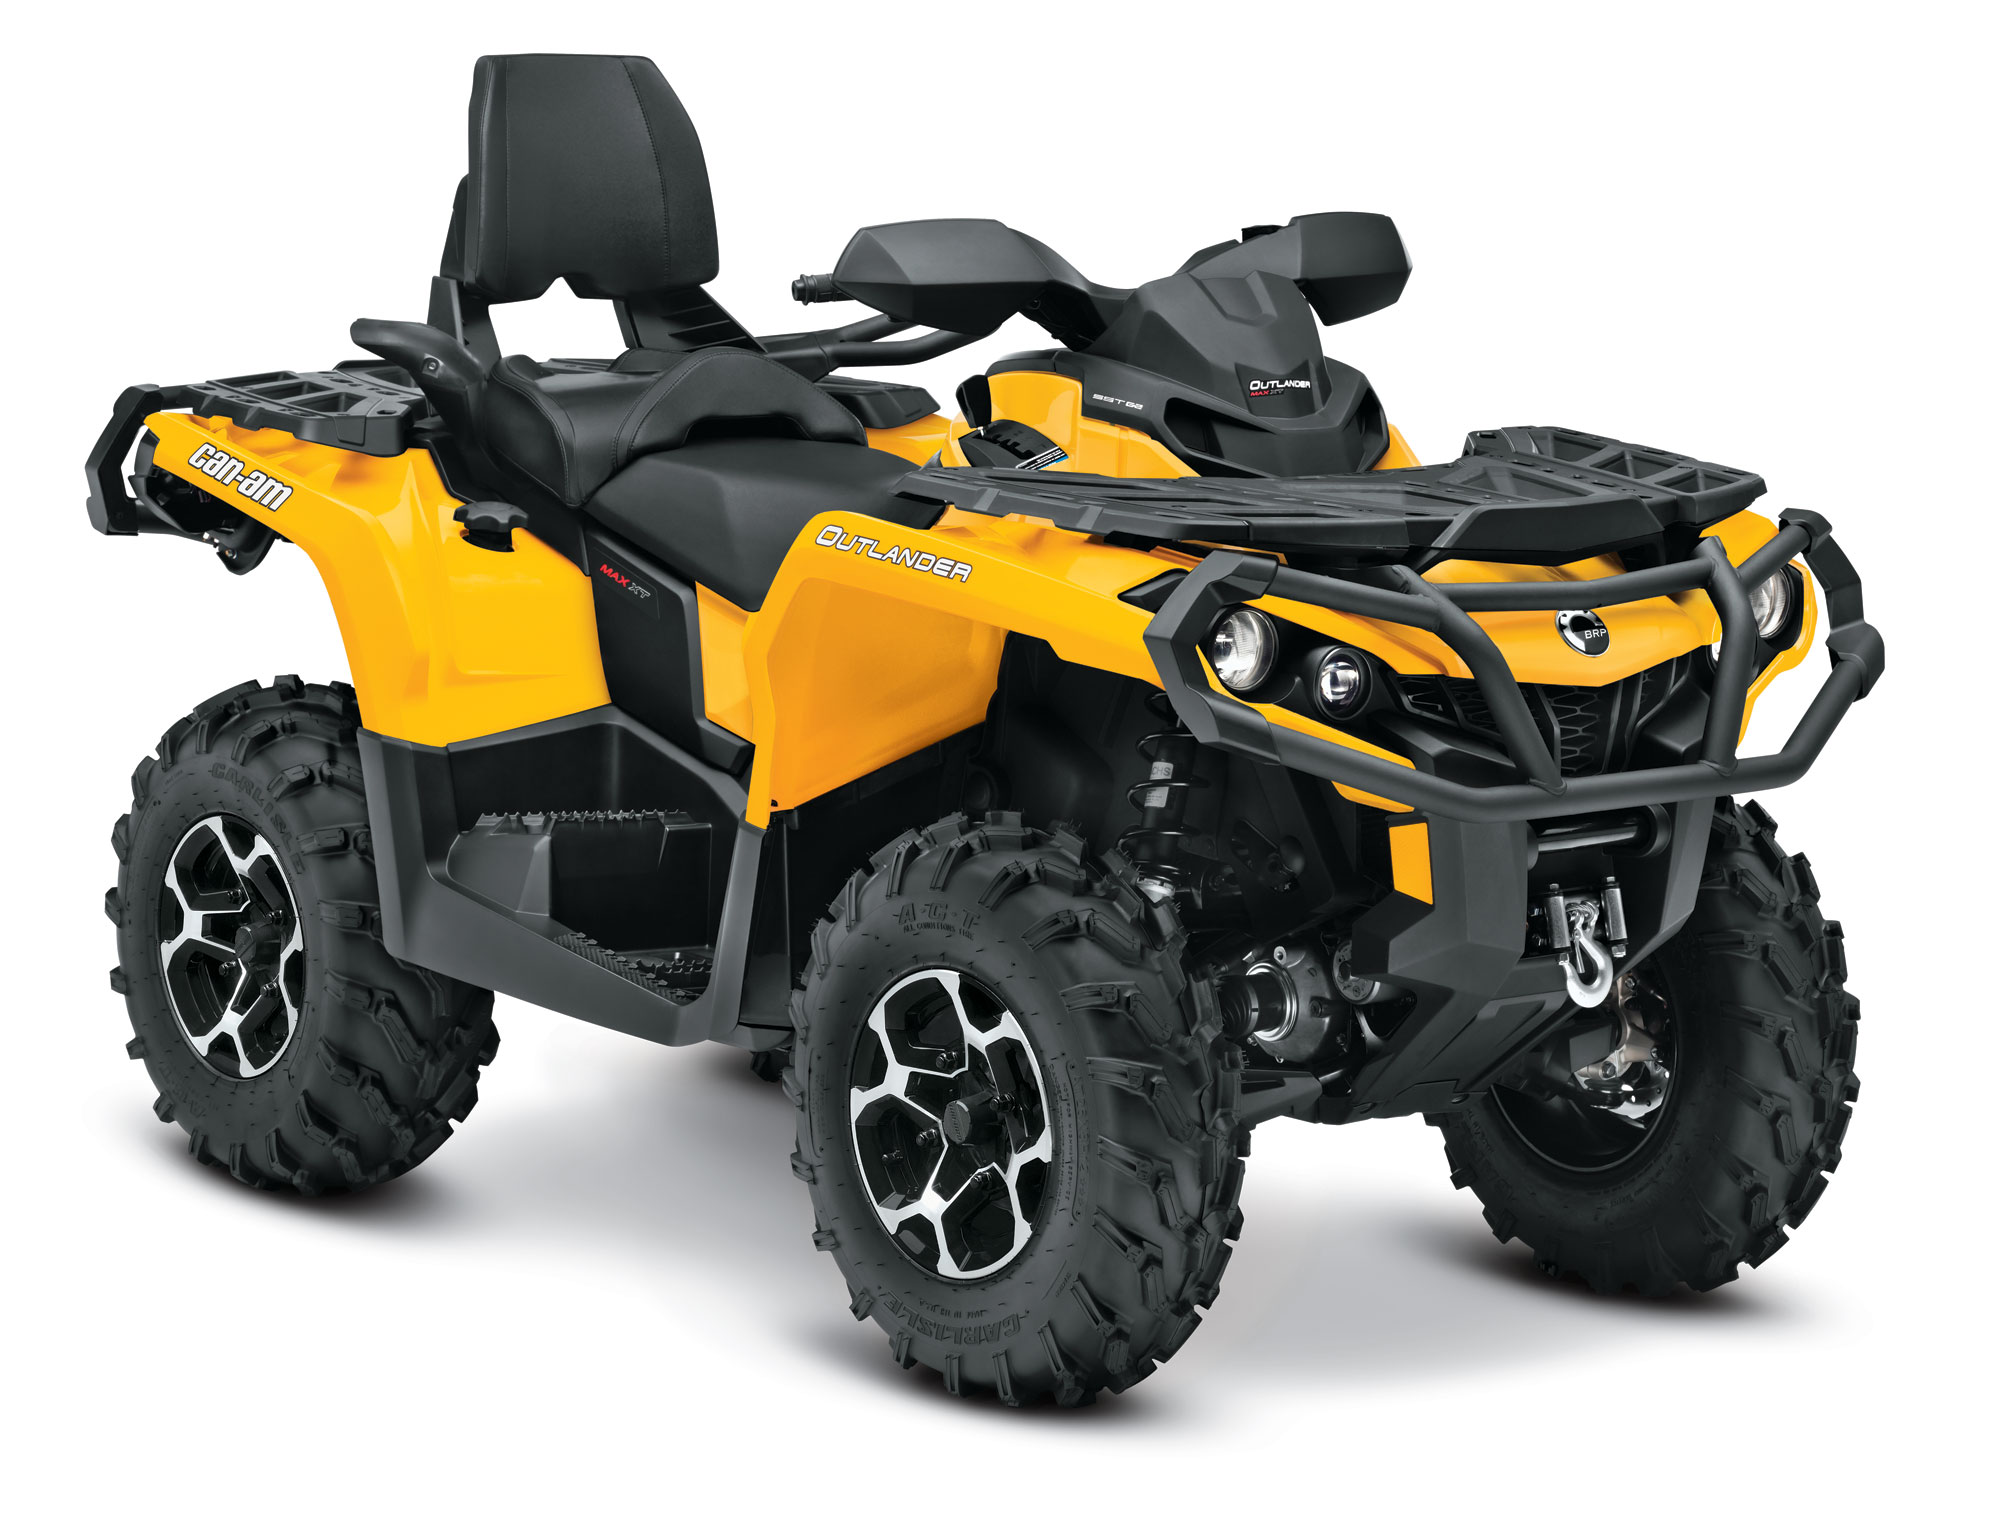 2013 Can Am Outlander Max Xt 800r Review